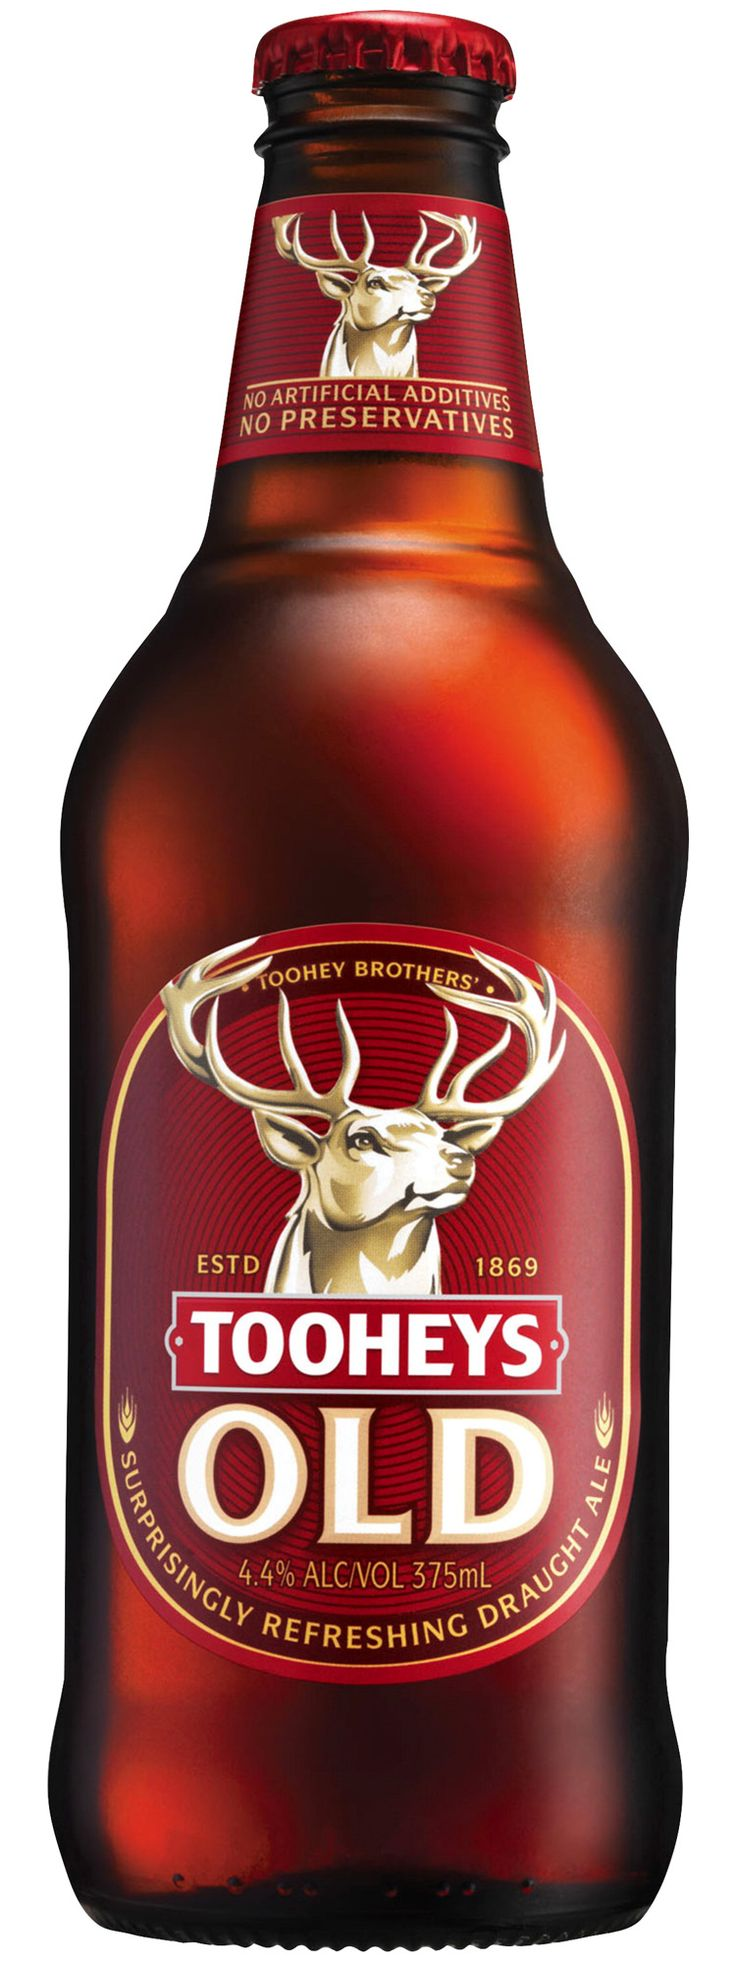 Tooheys Old - this goes out to a fellow designer in Calgary! #cheers #toohey HA!